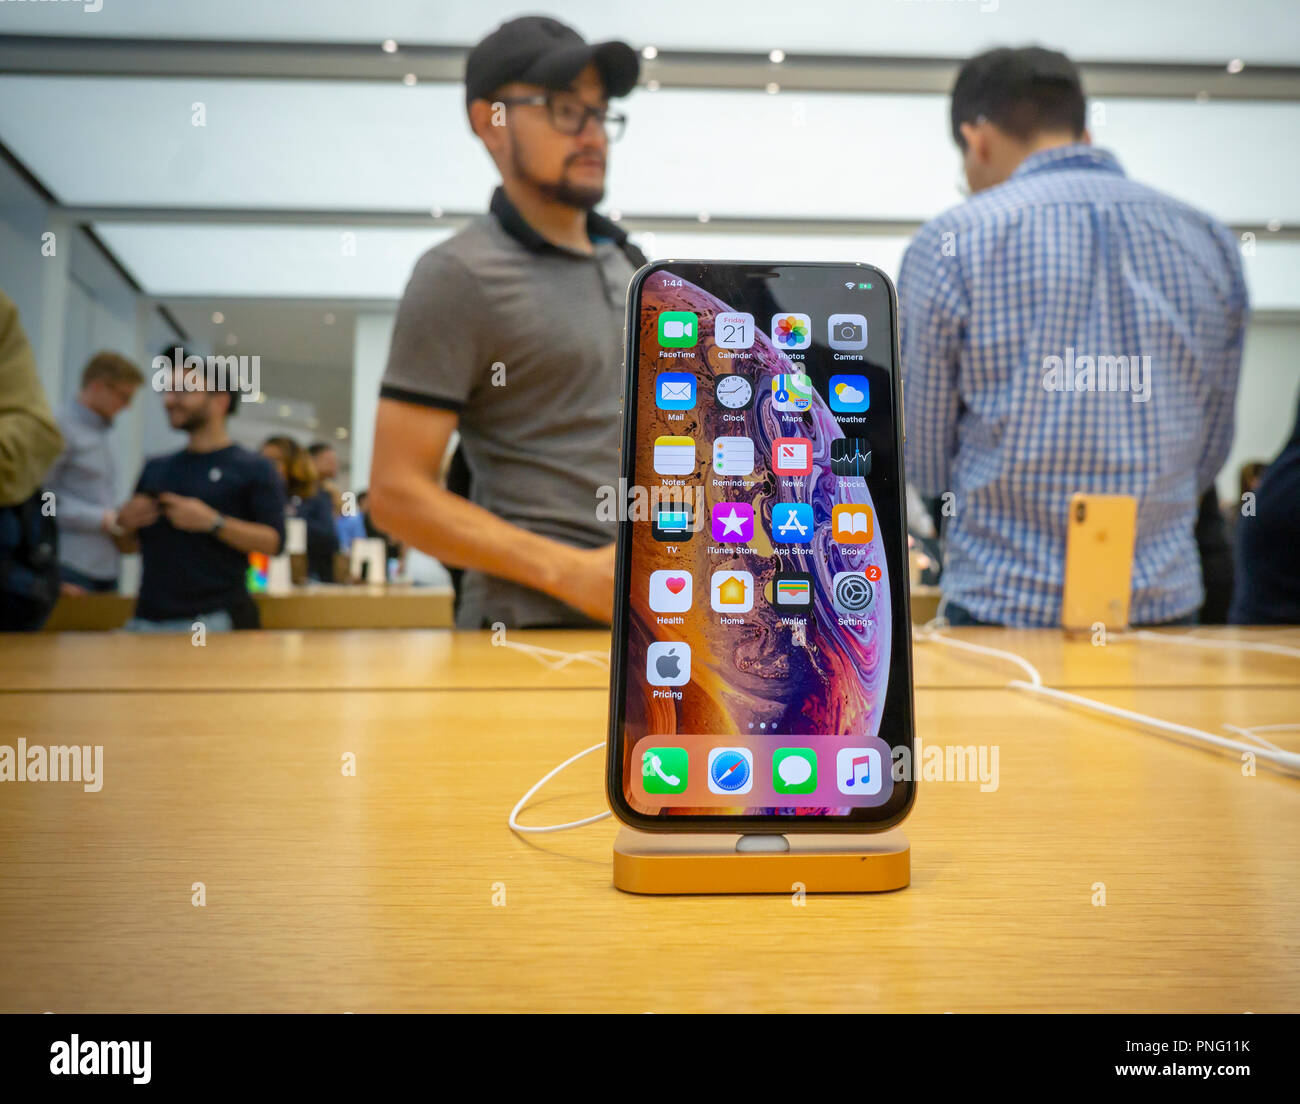 New York, USA. 21st September 2018. Customers in the Apple store in the WTC Transportation Hub in New York try out the new iPhone XS on Friday, September 21, 2018, the first day they went on sale.  The new phones, anxiously awaited by drooling iPhone aficionados, sell for a whopping $999 for the XS and $1099 for the XS Max with the Max having a 6.5 inch display.  (© Richard B. Levine) Credit: Richard Levine/Alamy Live News Credit: Richard Levine/Alamy Live News Stock Photo